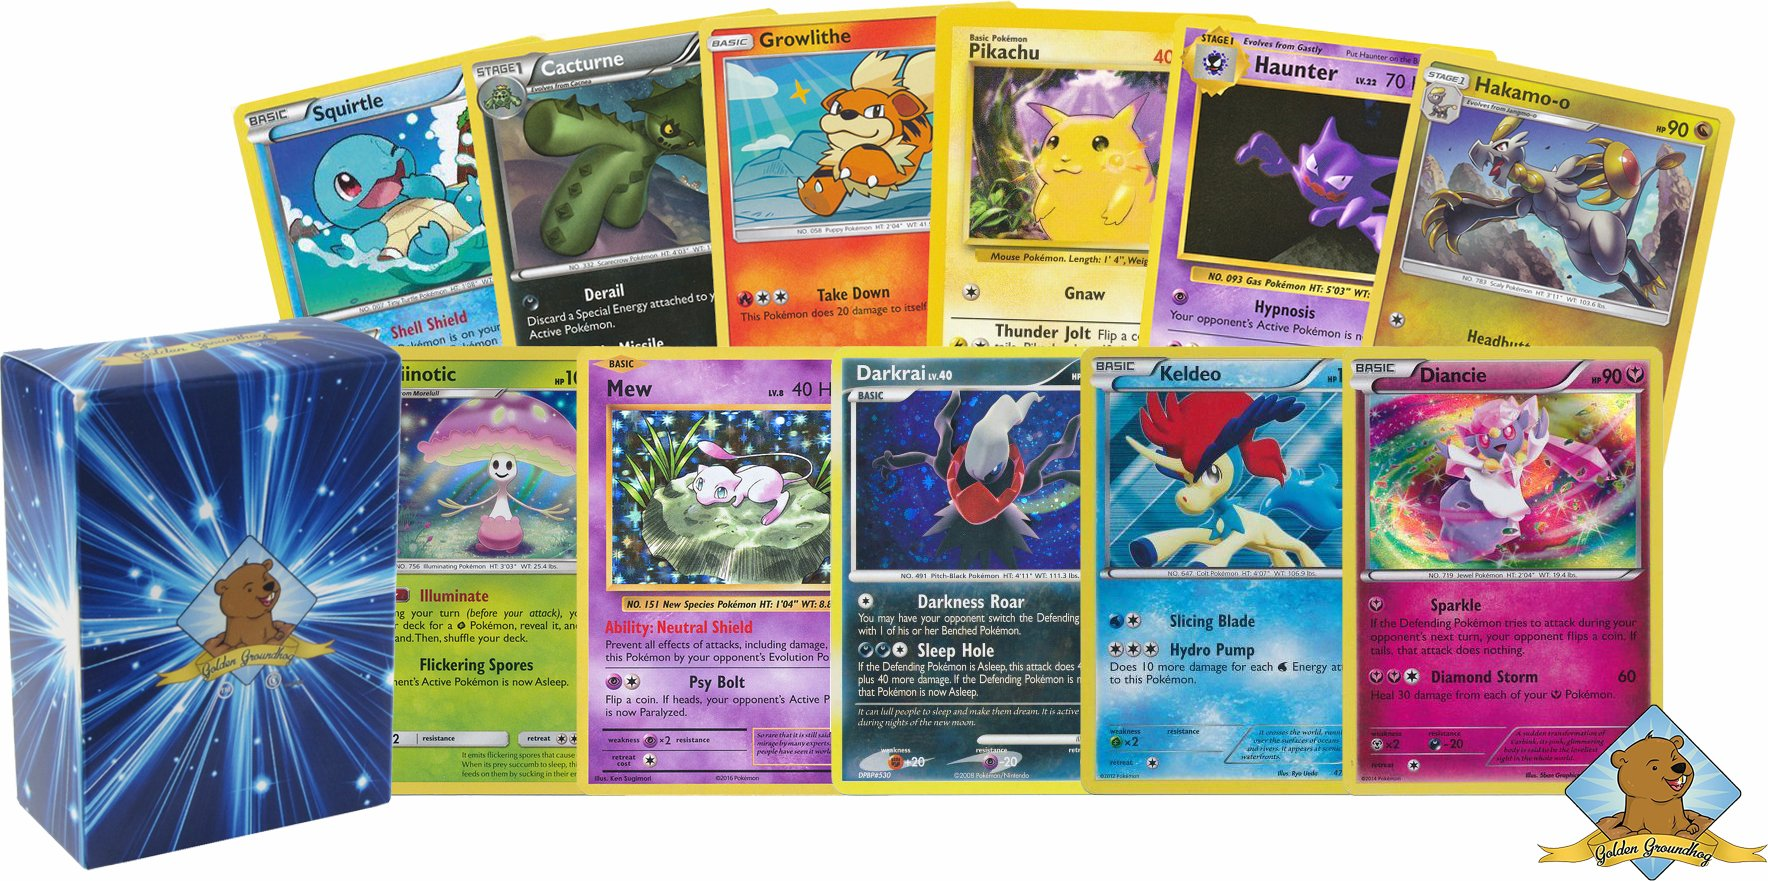 100 Pokemon Cards with 5 Holo Rares! Includes Golden Groundhog Deck Box! by GoldenGroundhog (Image #1)